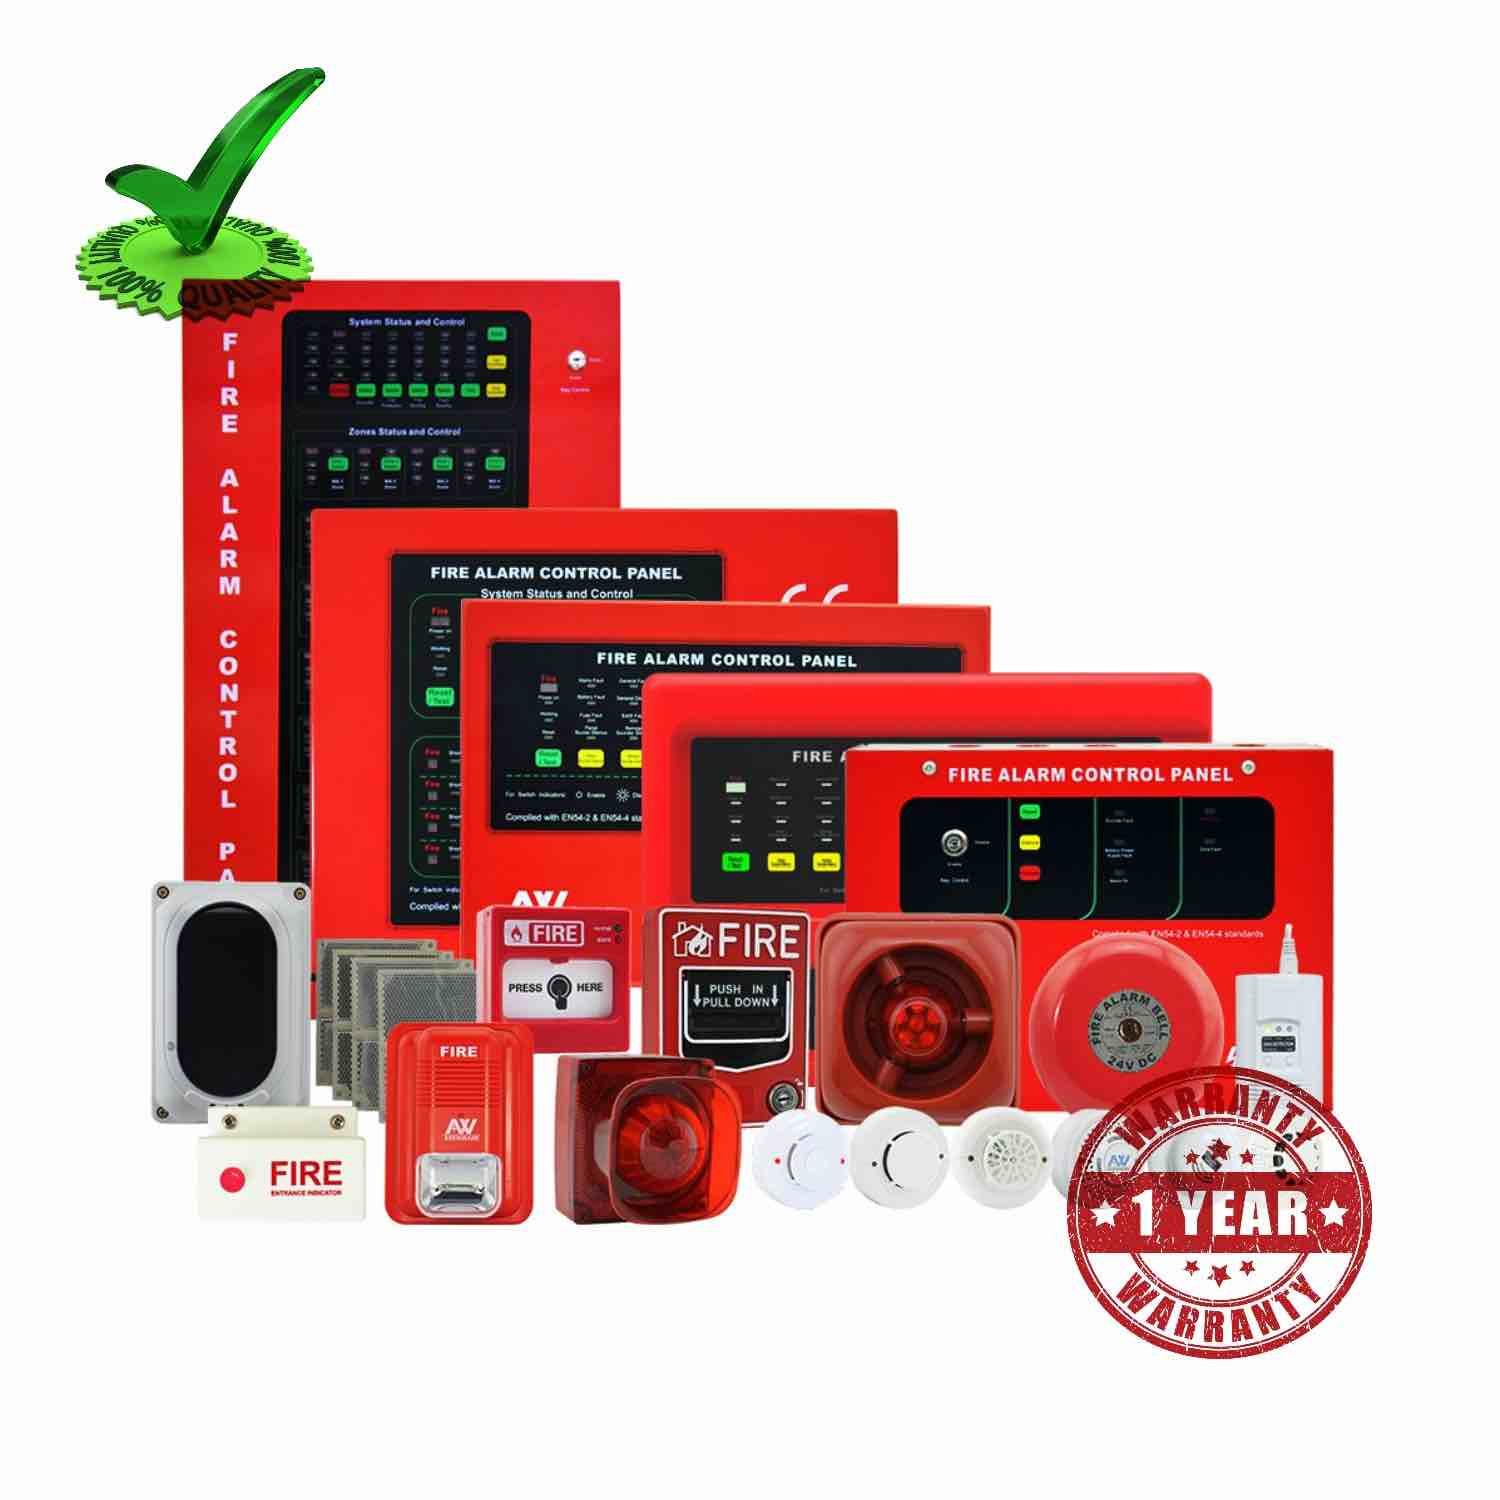 16 Zone Addressable Fire Alarm Control Panel